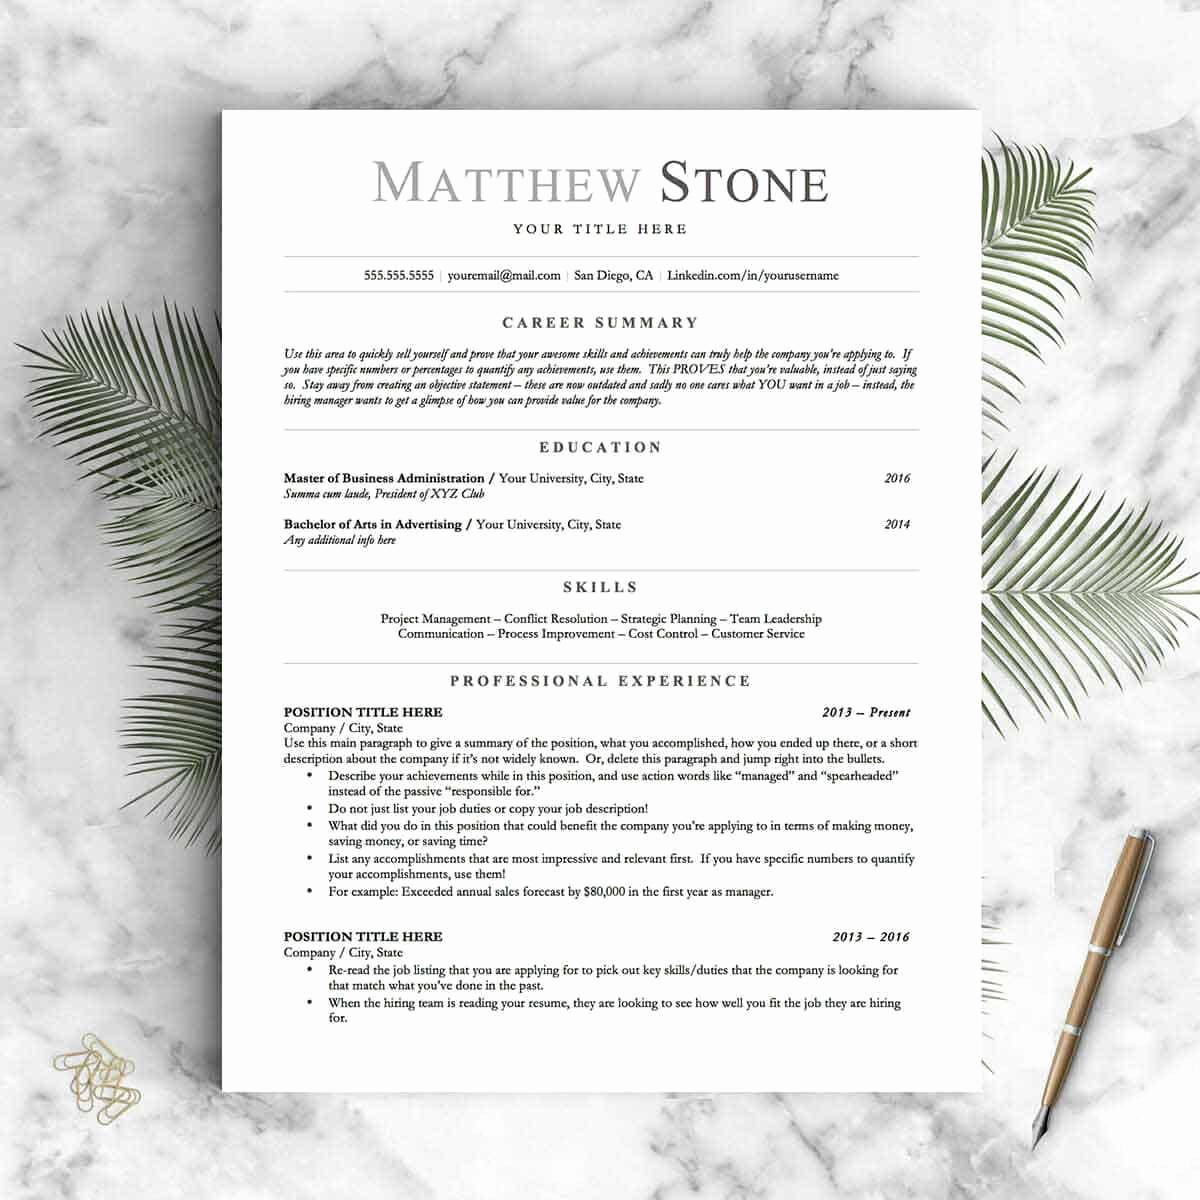 Resume with Picture Template New Basic Resume Templates 15 Examples to Download & Use now